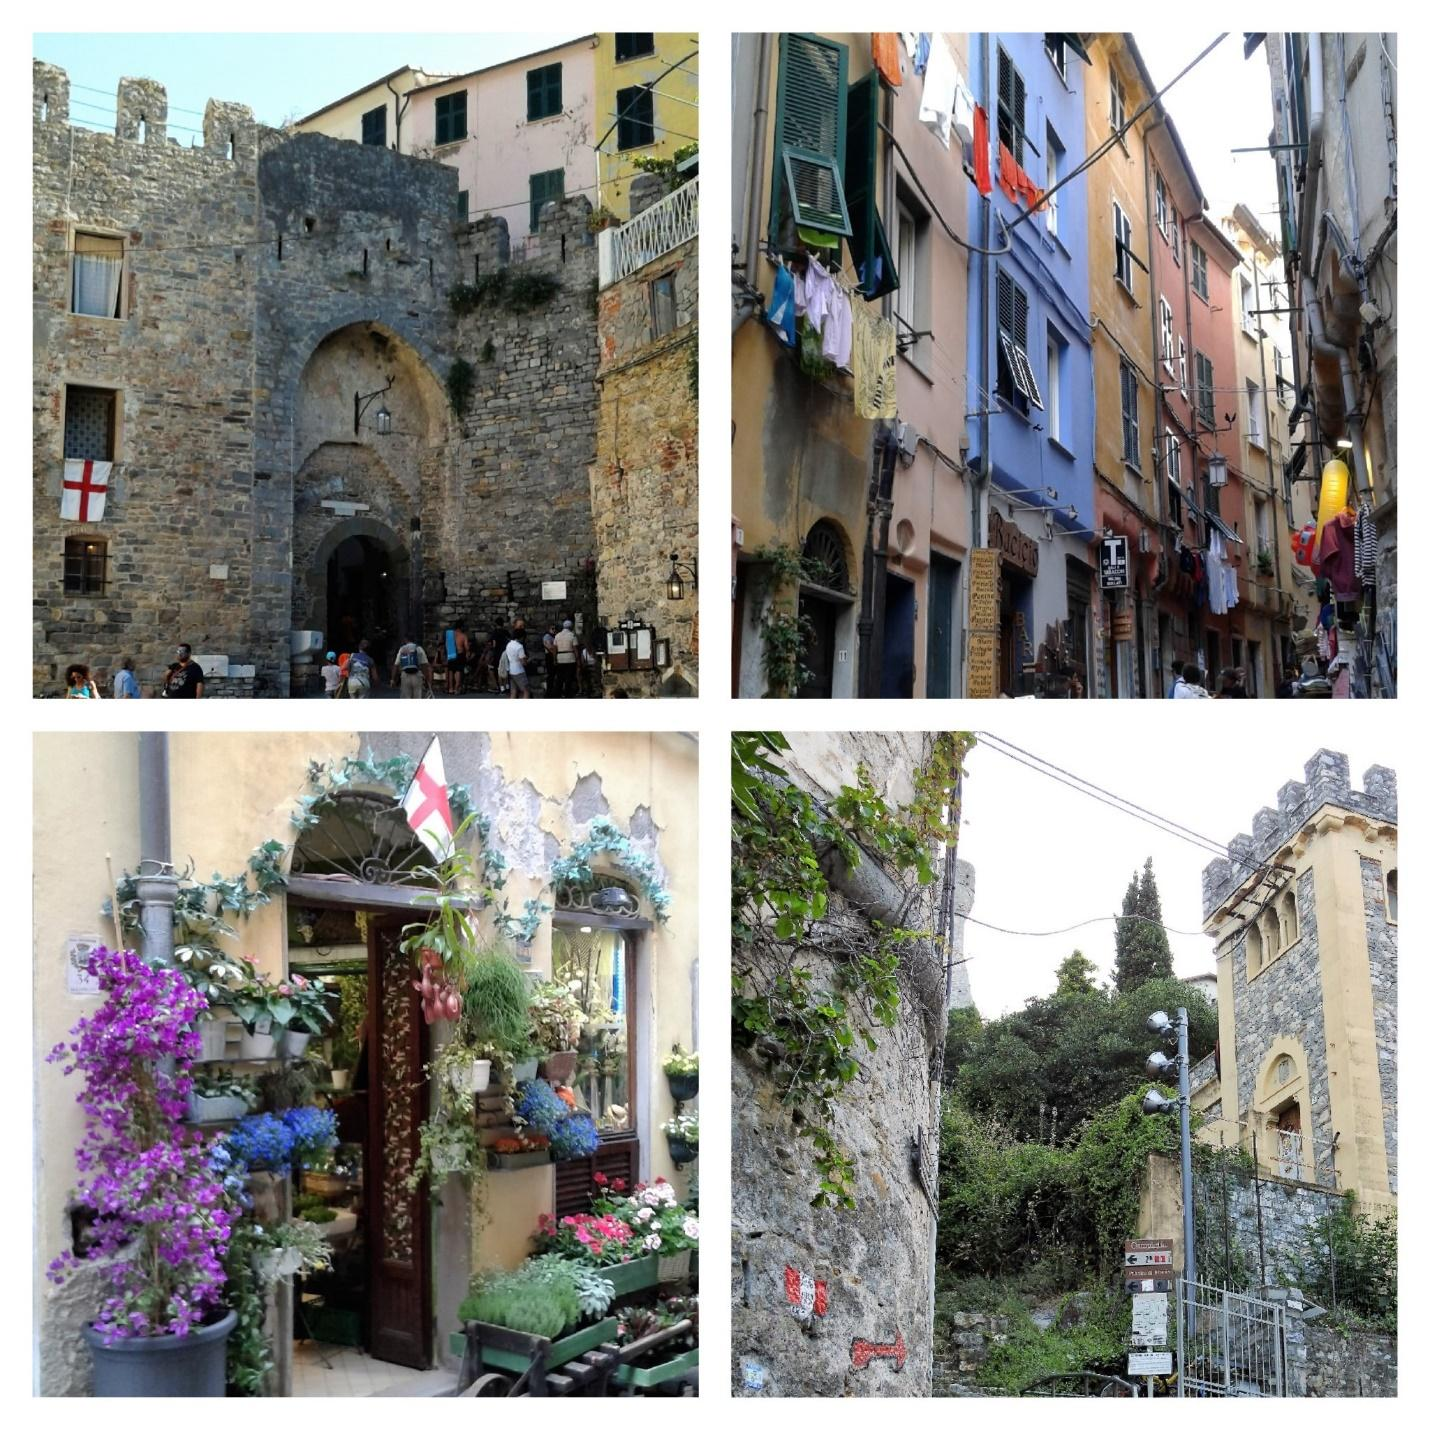 C:\Users\Owner\AppData\Local\Microsoft\Windows\INetCacheContent.Word\Old town Portovenere.jpeg